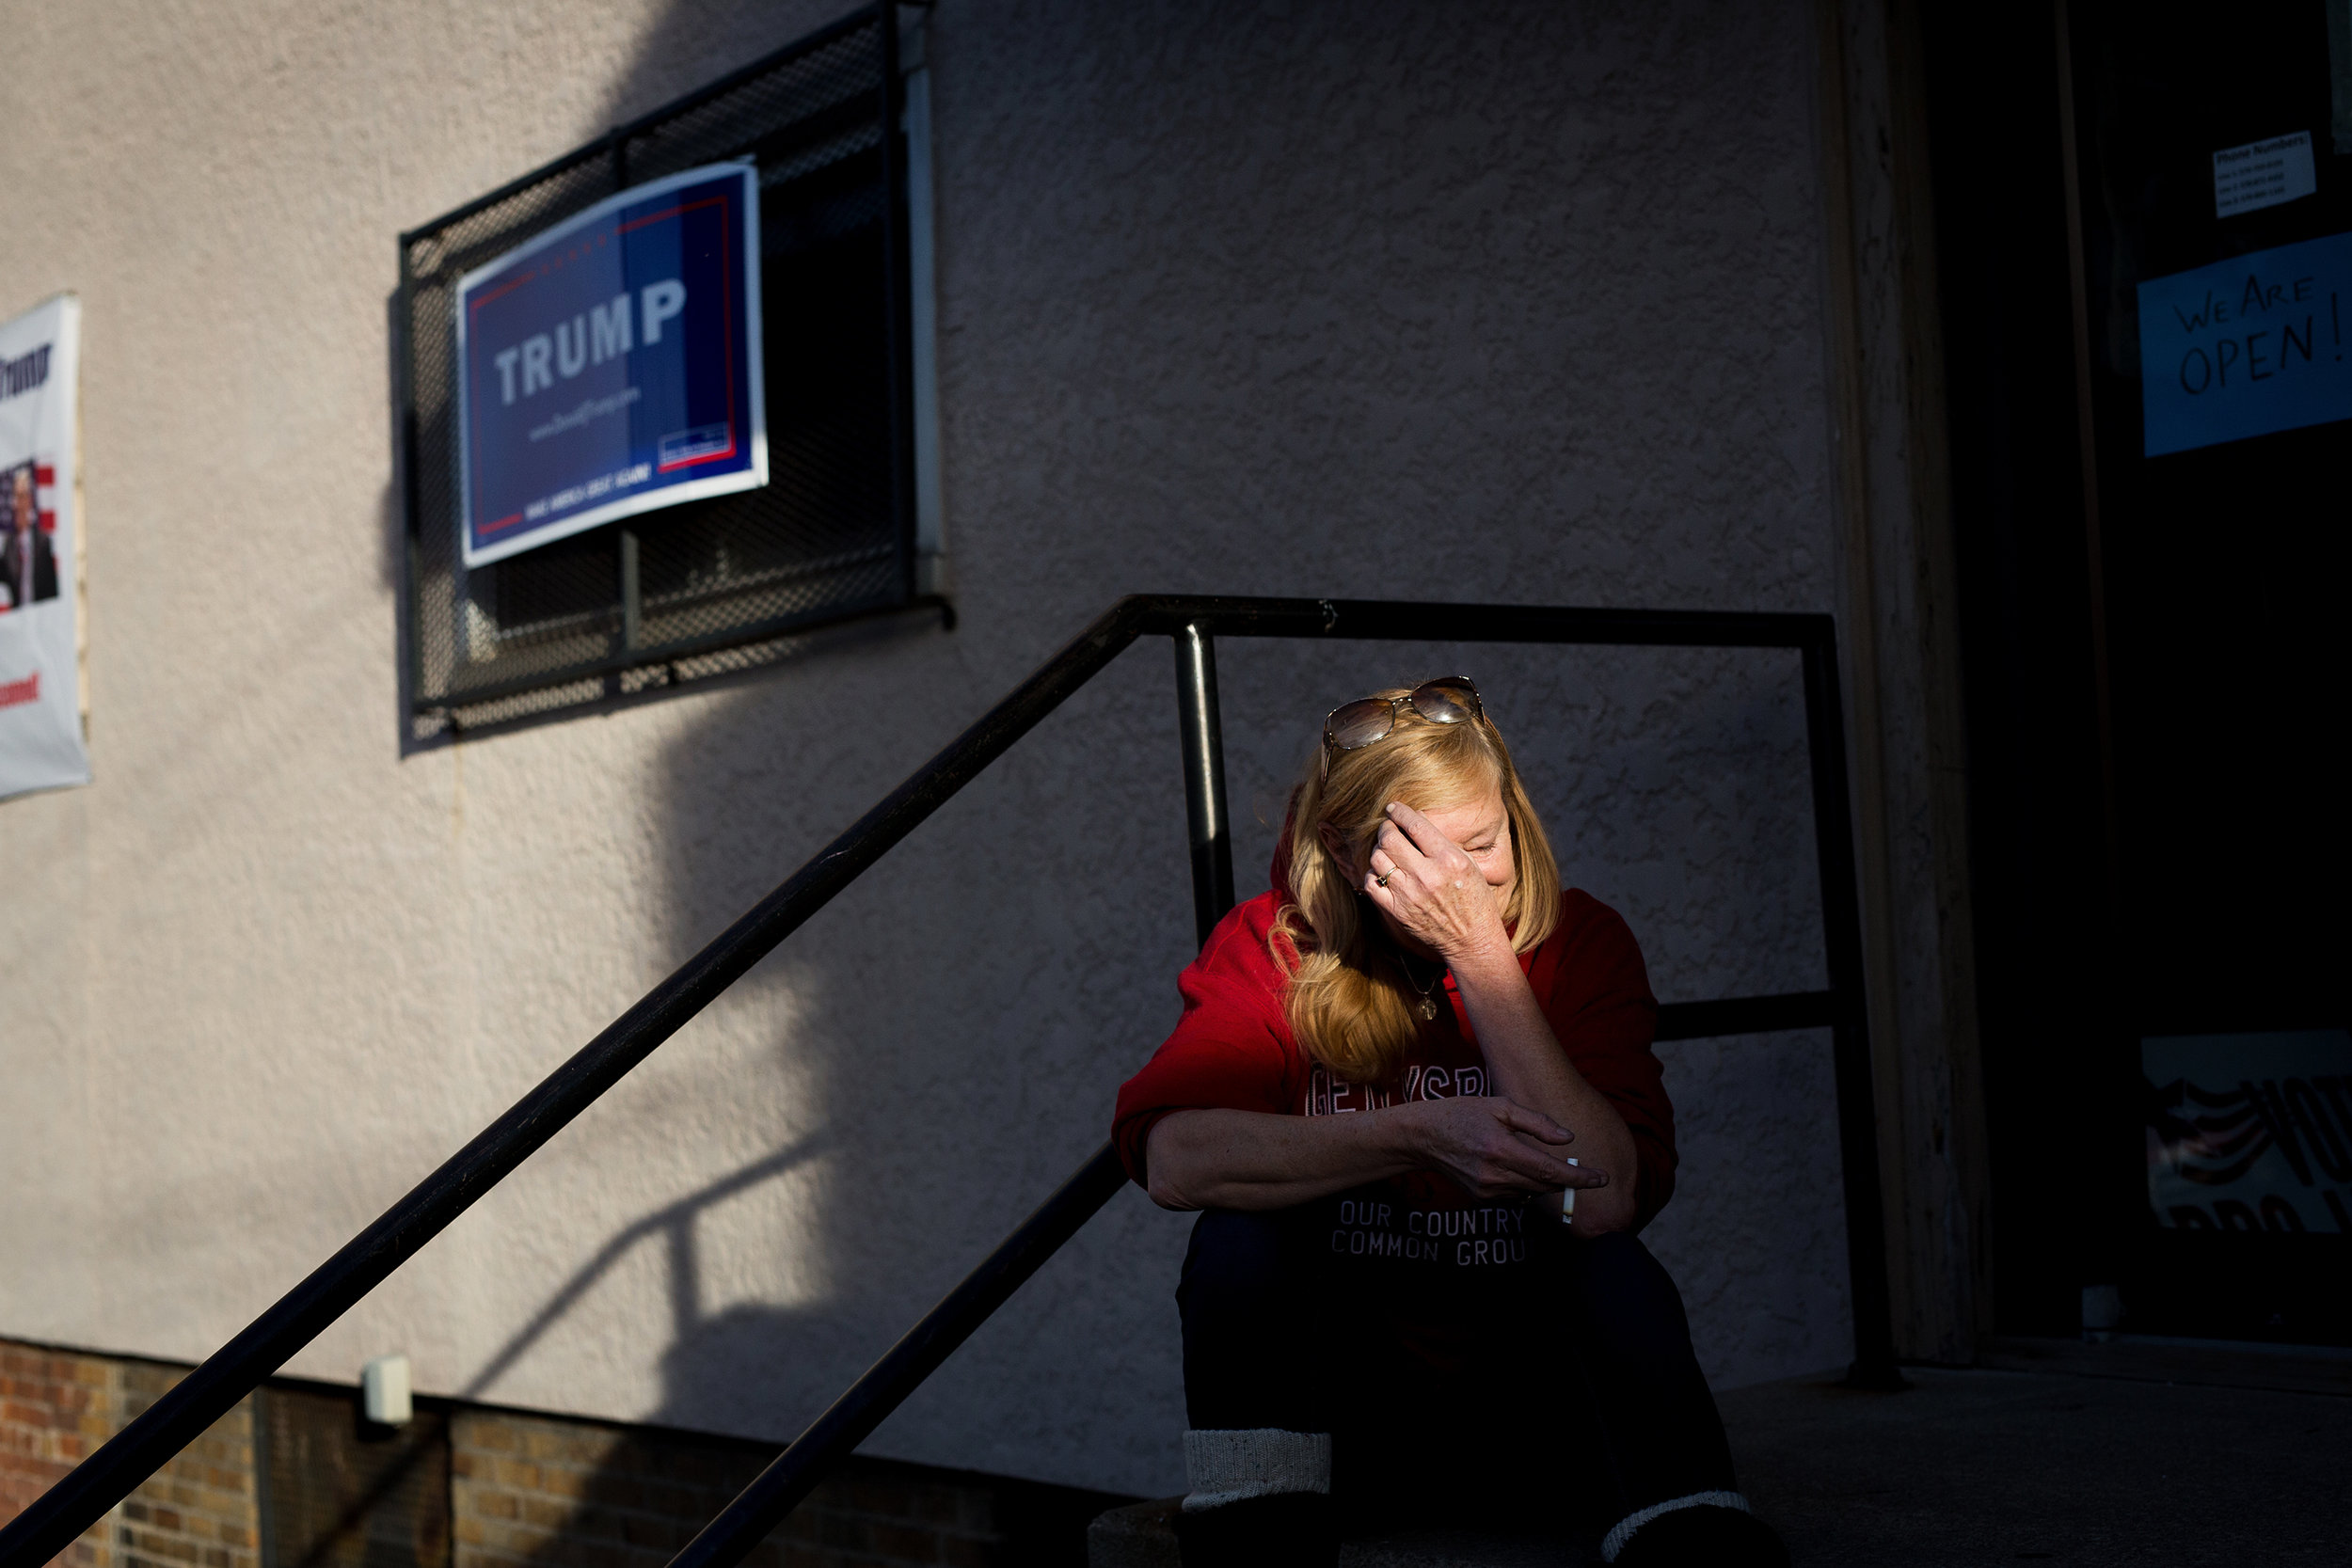 Trump supporter Patti Puorro awaiting election results outside a Donald Trump volunteer center in Scranton, Pennsylvania.